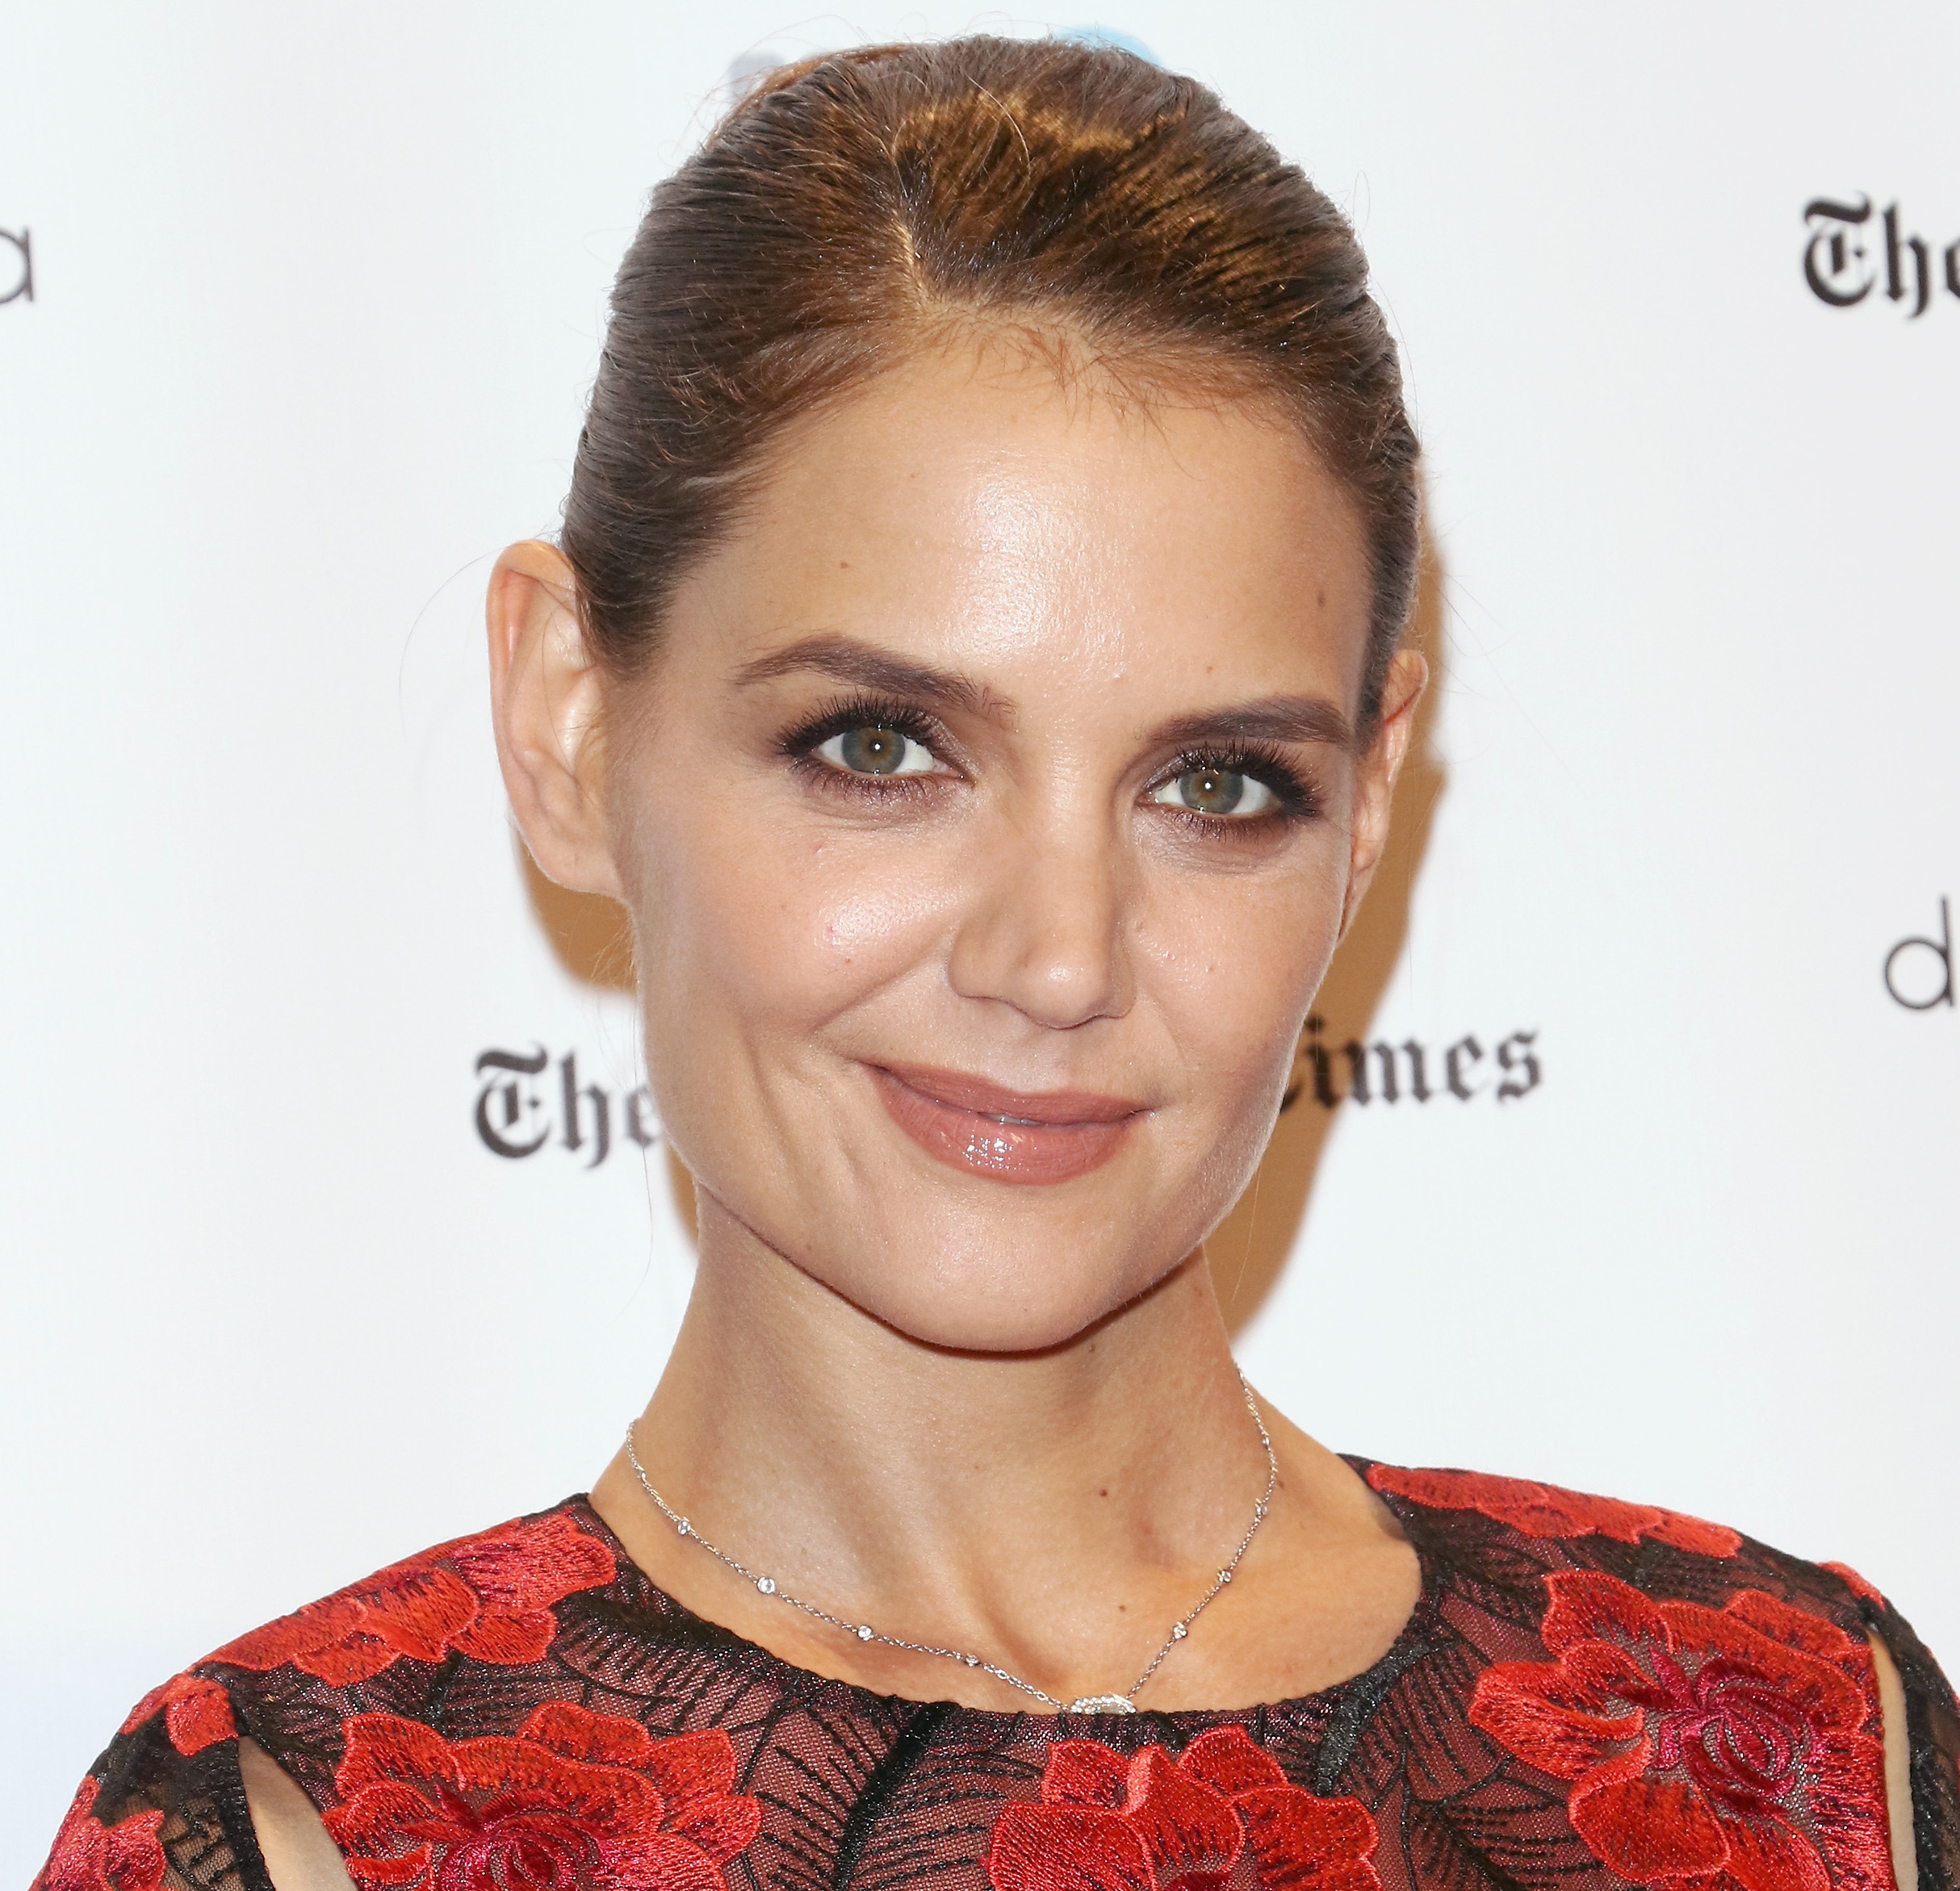 We love that Katie Holmes rocked her natural, unstyled hair on the red carpet